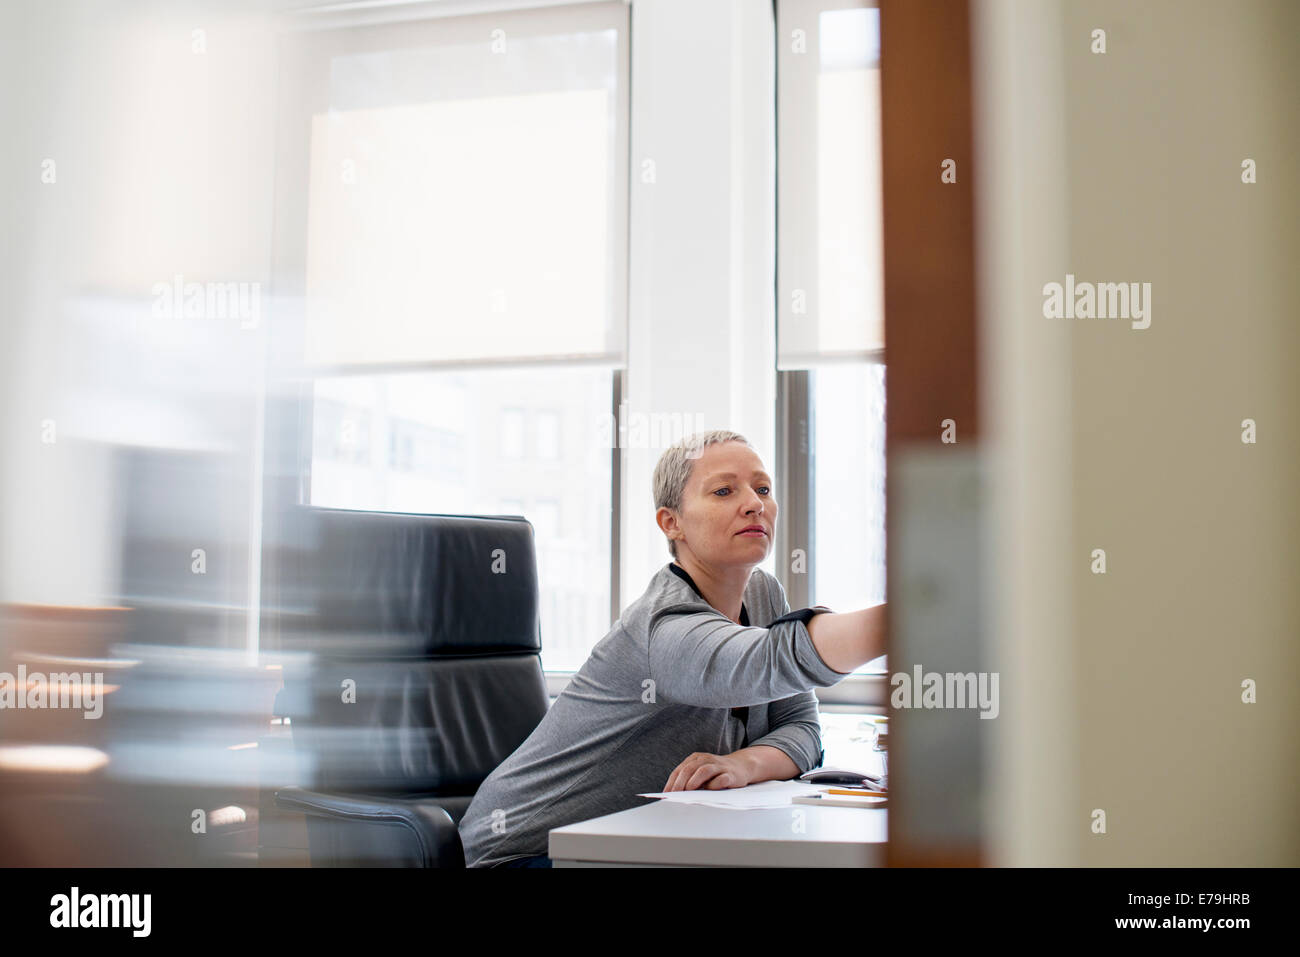 A woman working in an office alone, at her desk leaning forward to look at something. - Stock Image